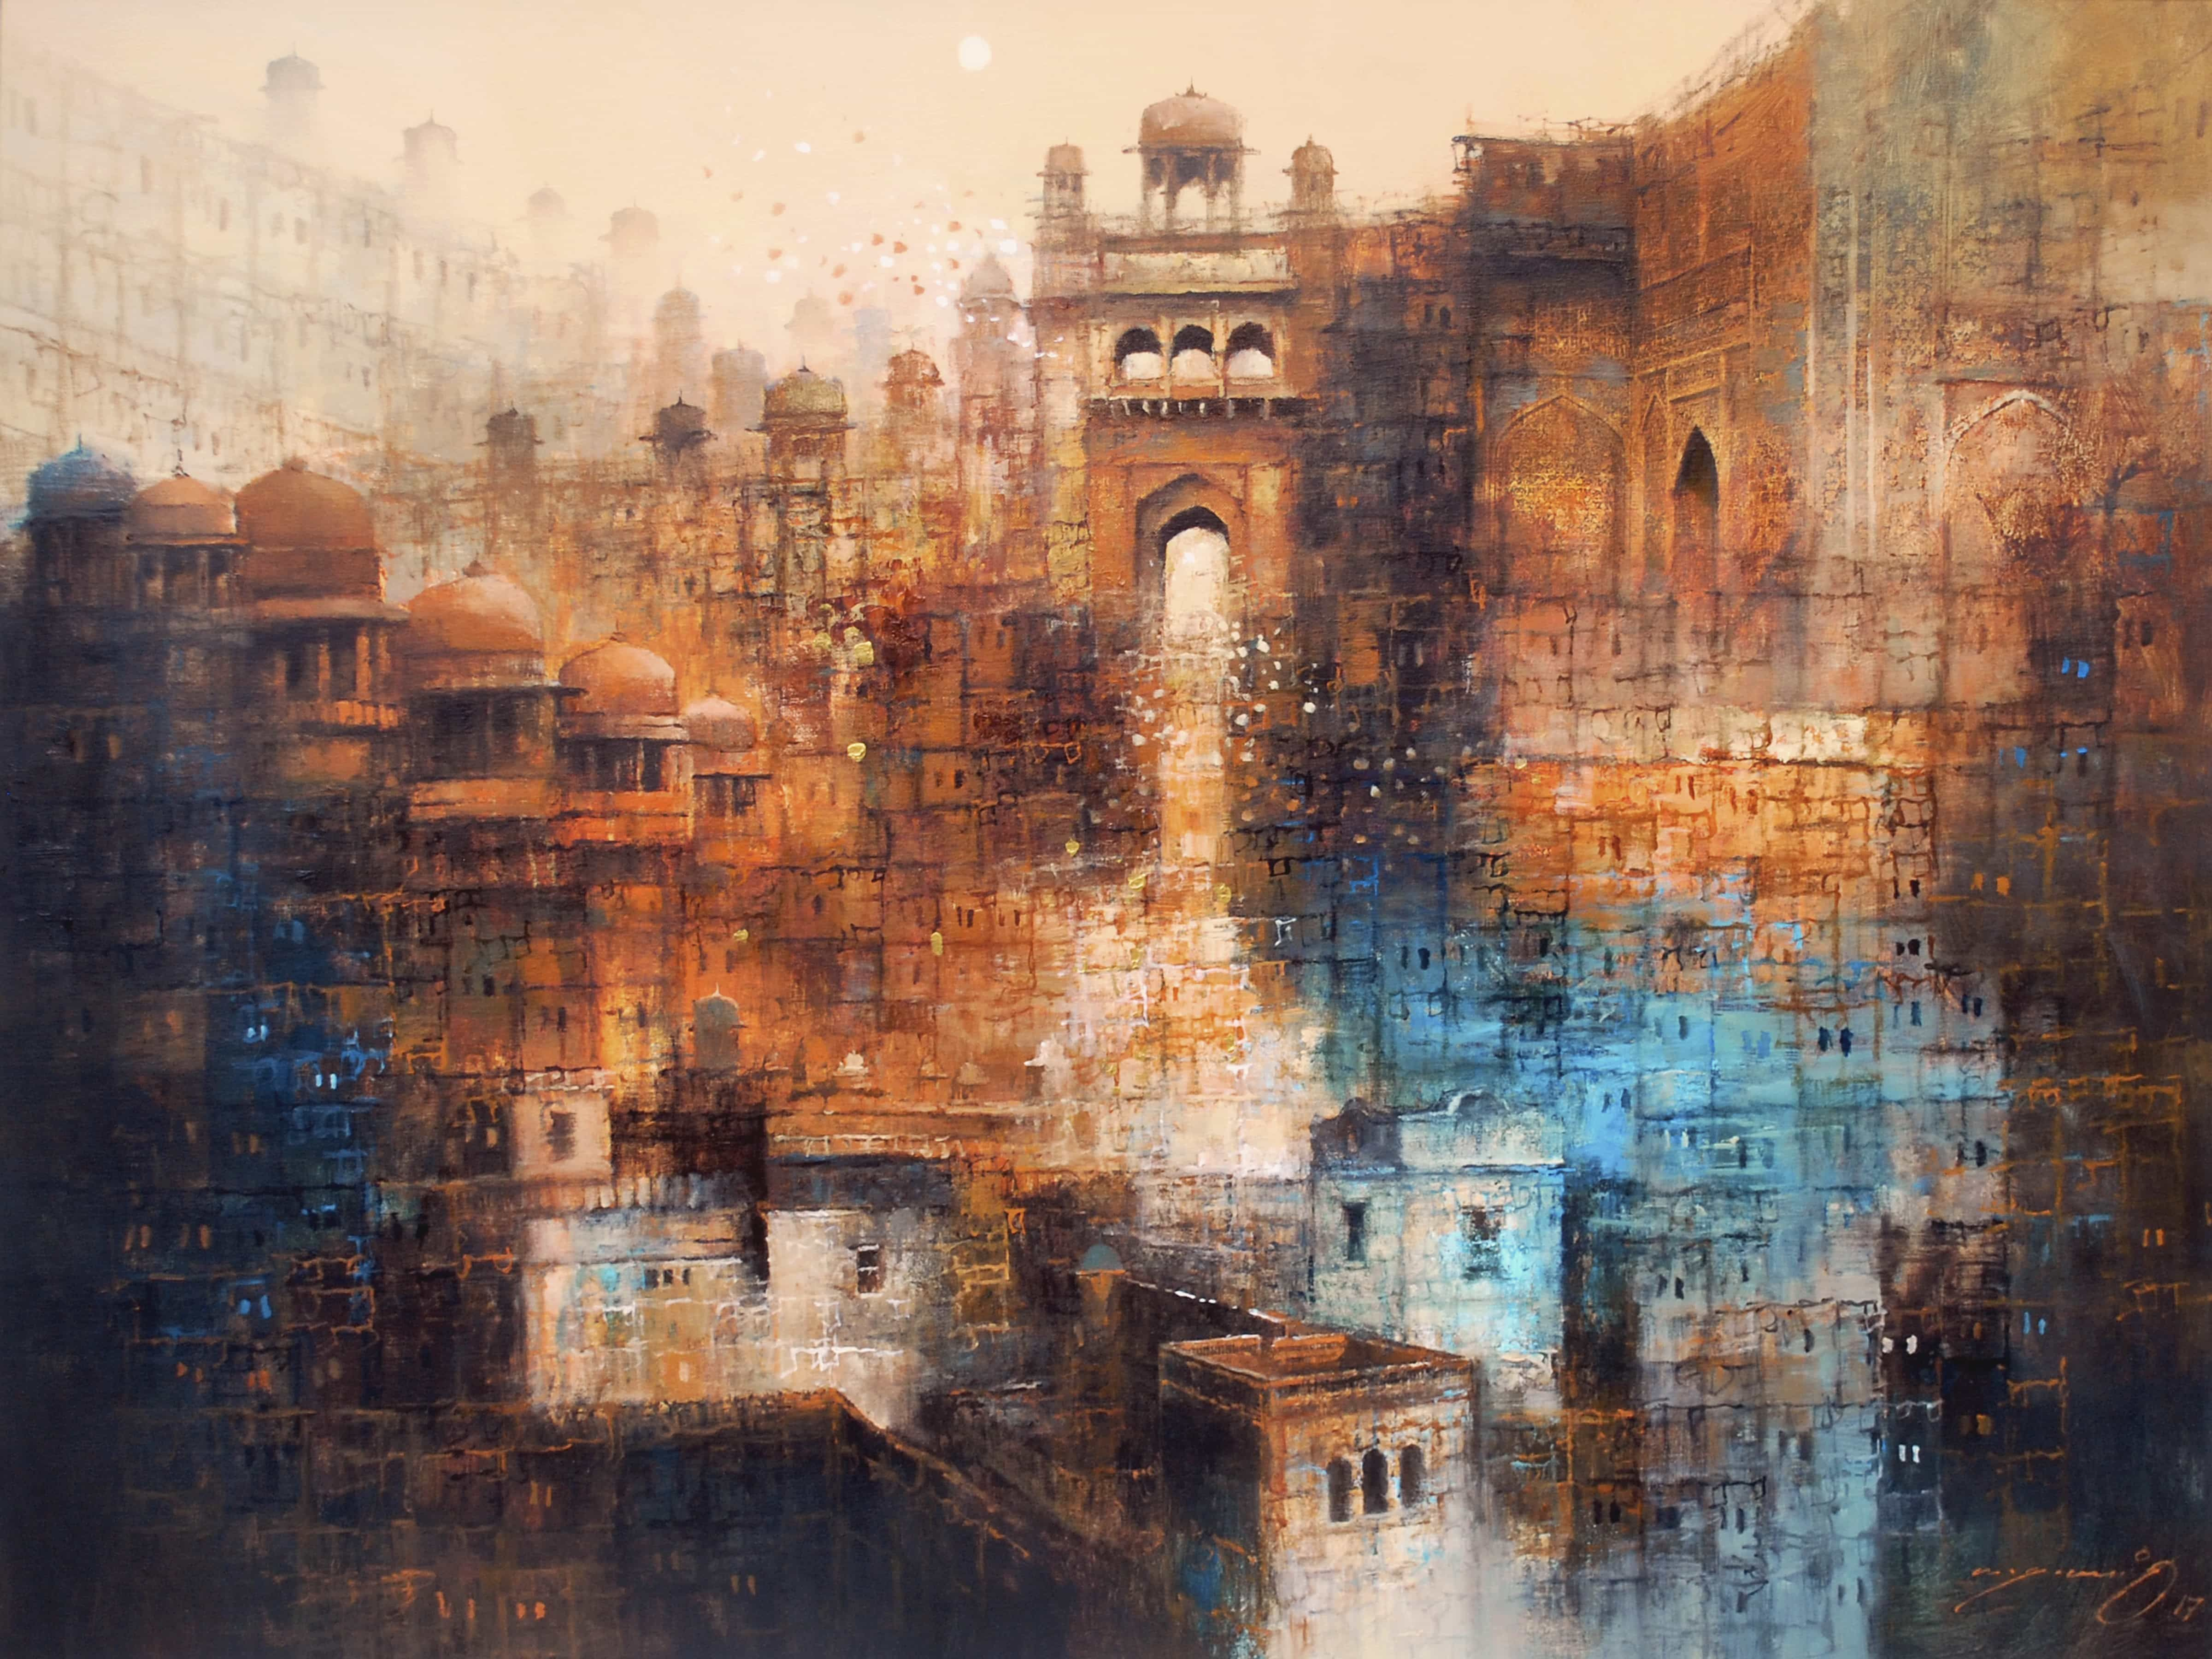 Aq Arif Landscape Painting Mughal Building Medium Oil On Canvas Size 36 X 48 Dome Paintings Fantasy Historical A Abstract Art Painting Art Gallery Art